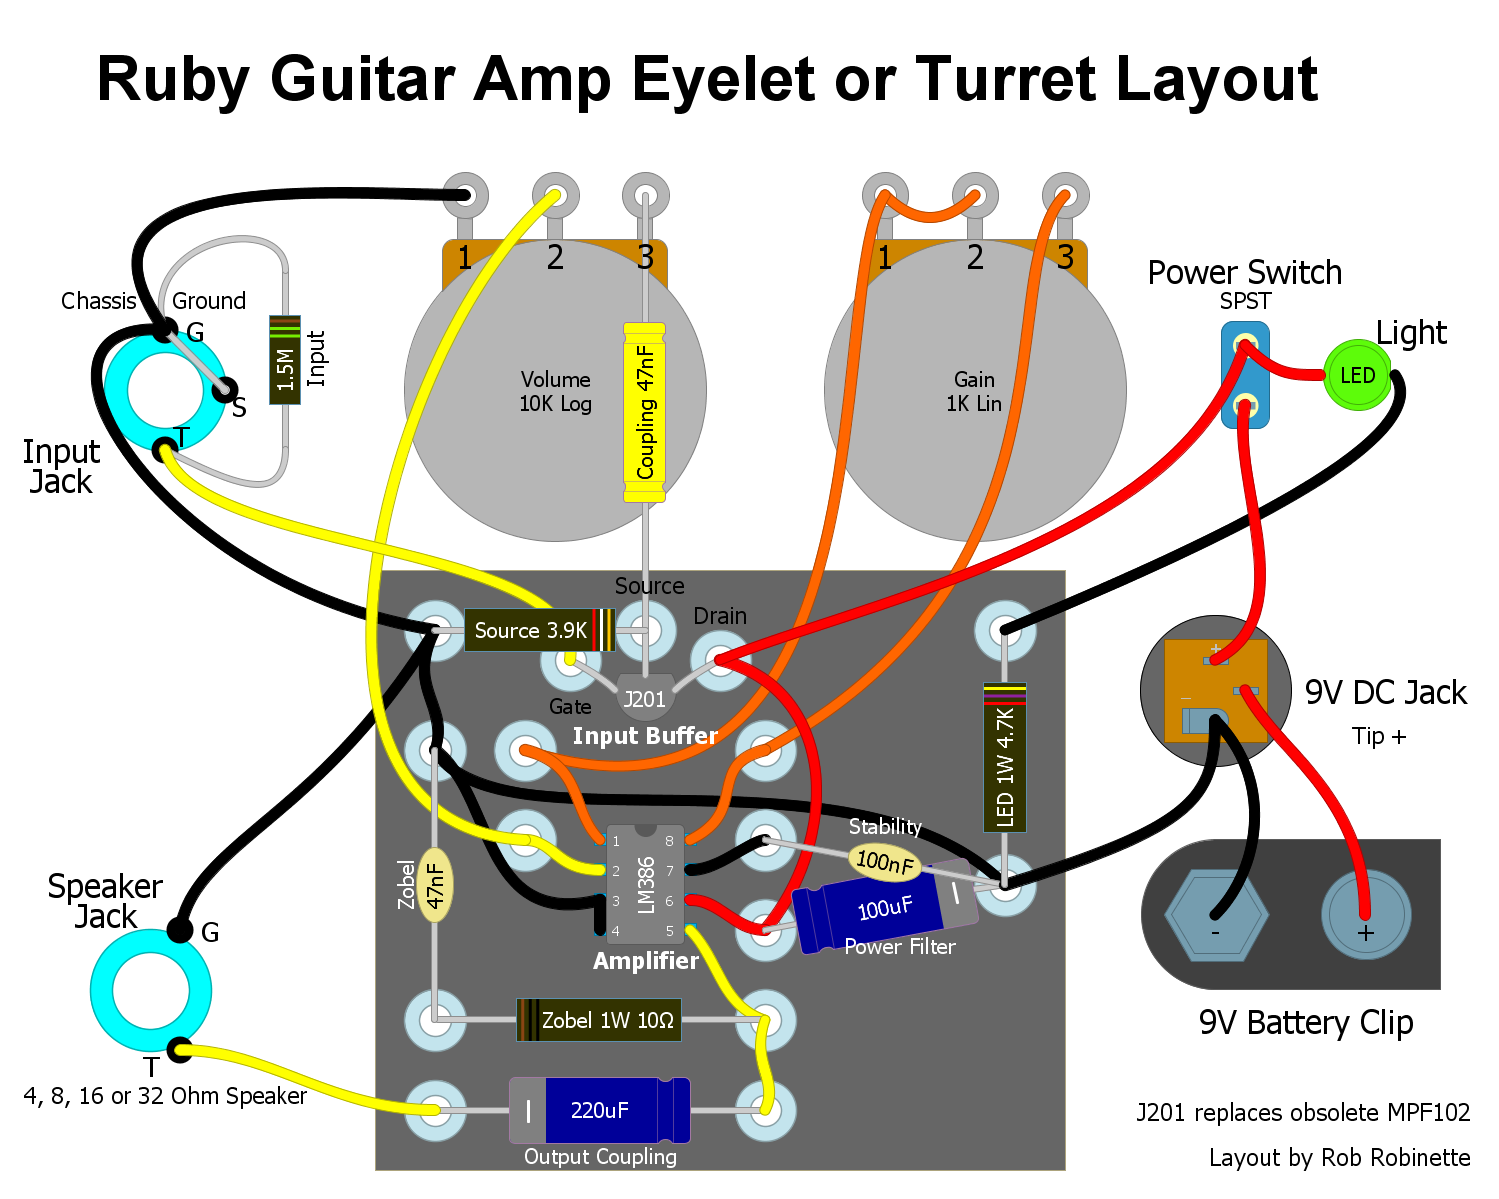 How The Ruby Works Emitter Audio Preamp Schematic Using 1 Npn Transistor Circuit Drawing Use Heat Sink Clips Between Soldering Iron And J201s Body To Keep From Damaging An 8 Pin Dip